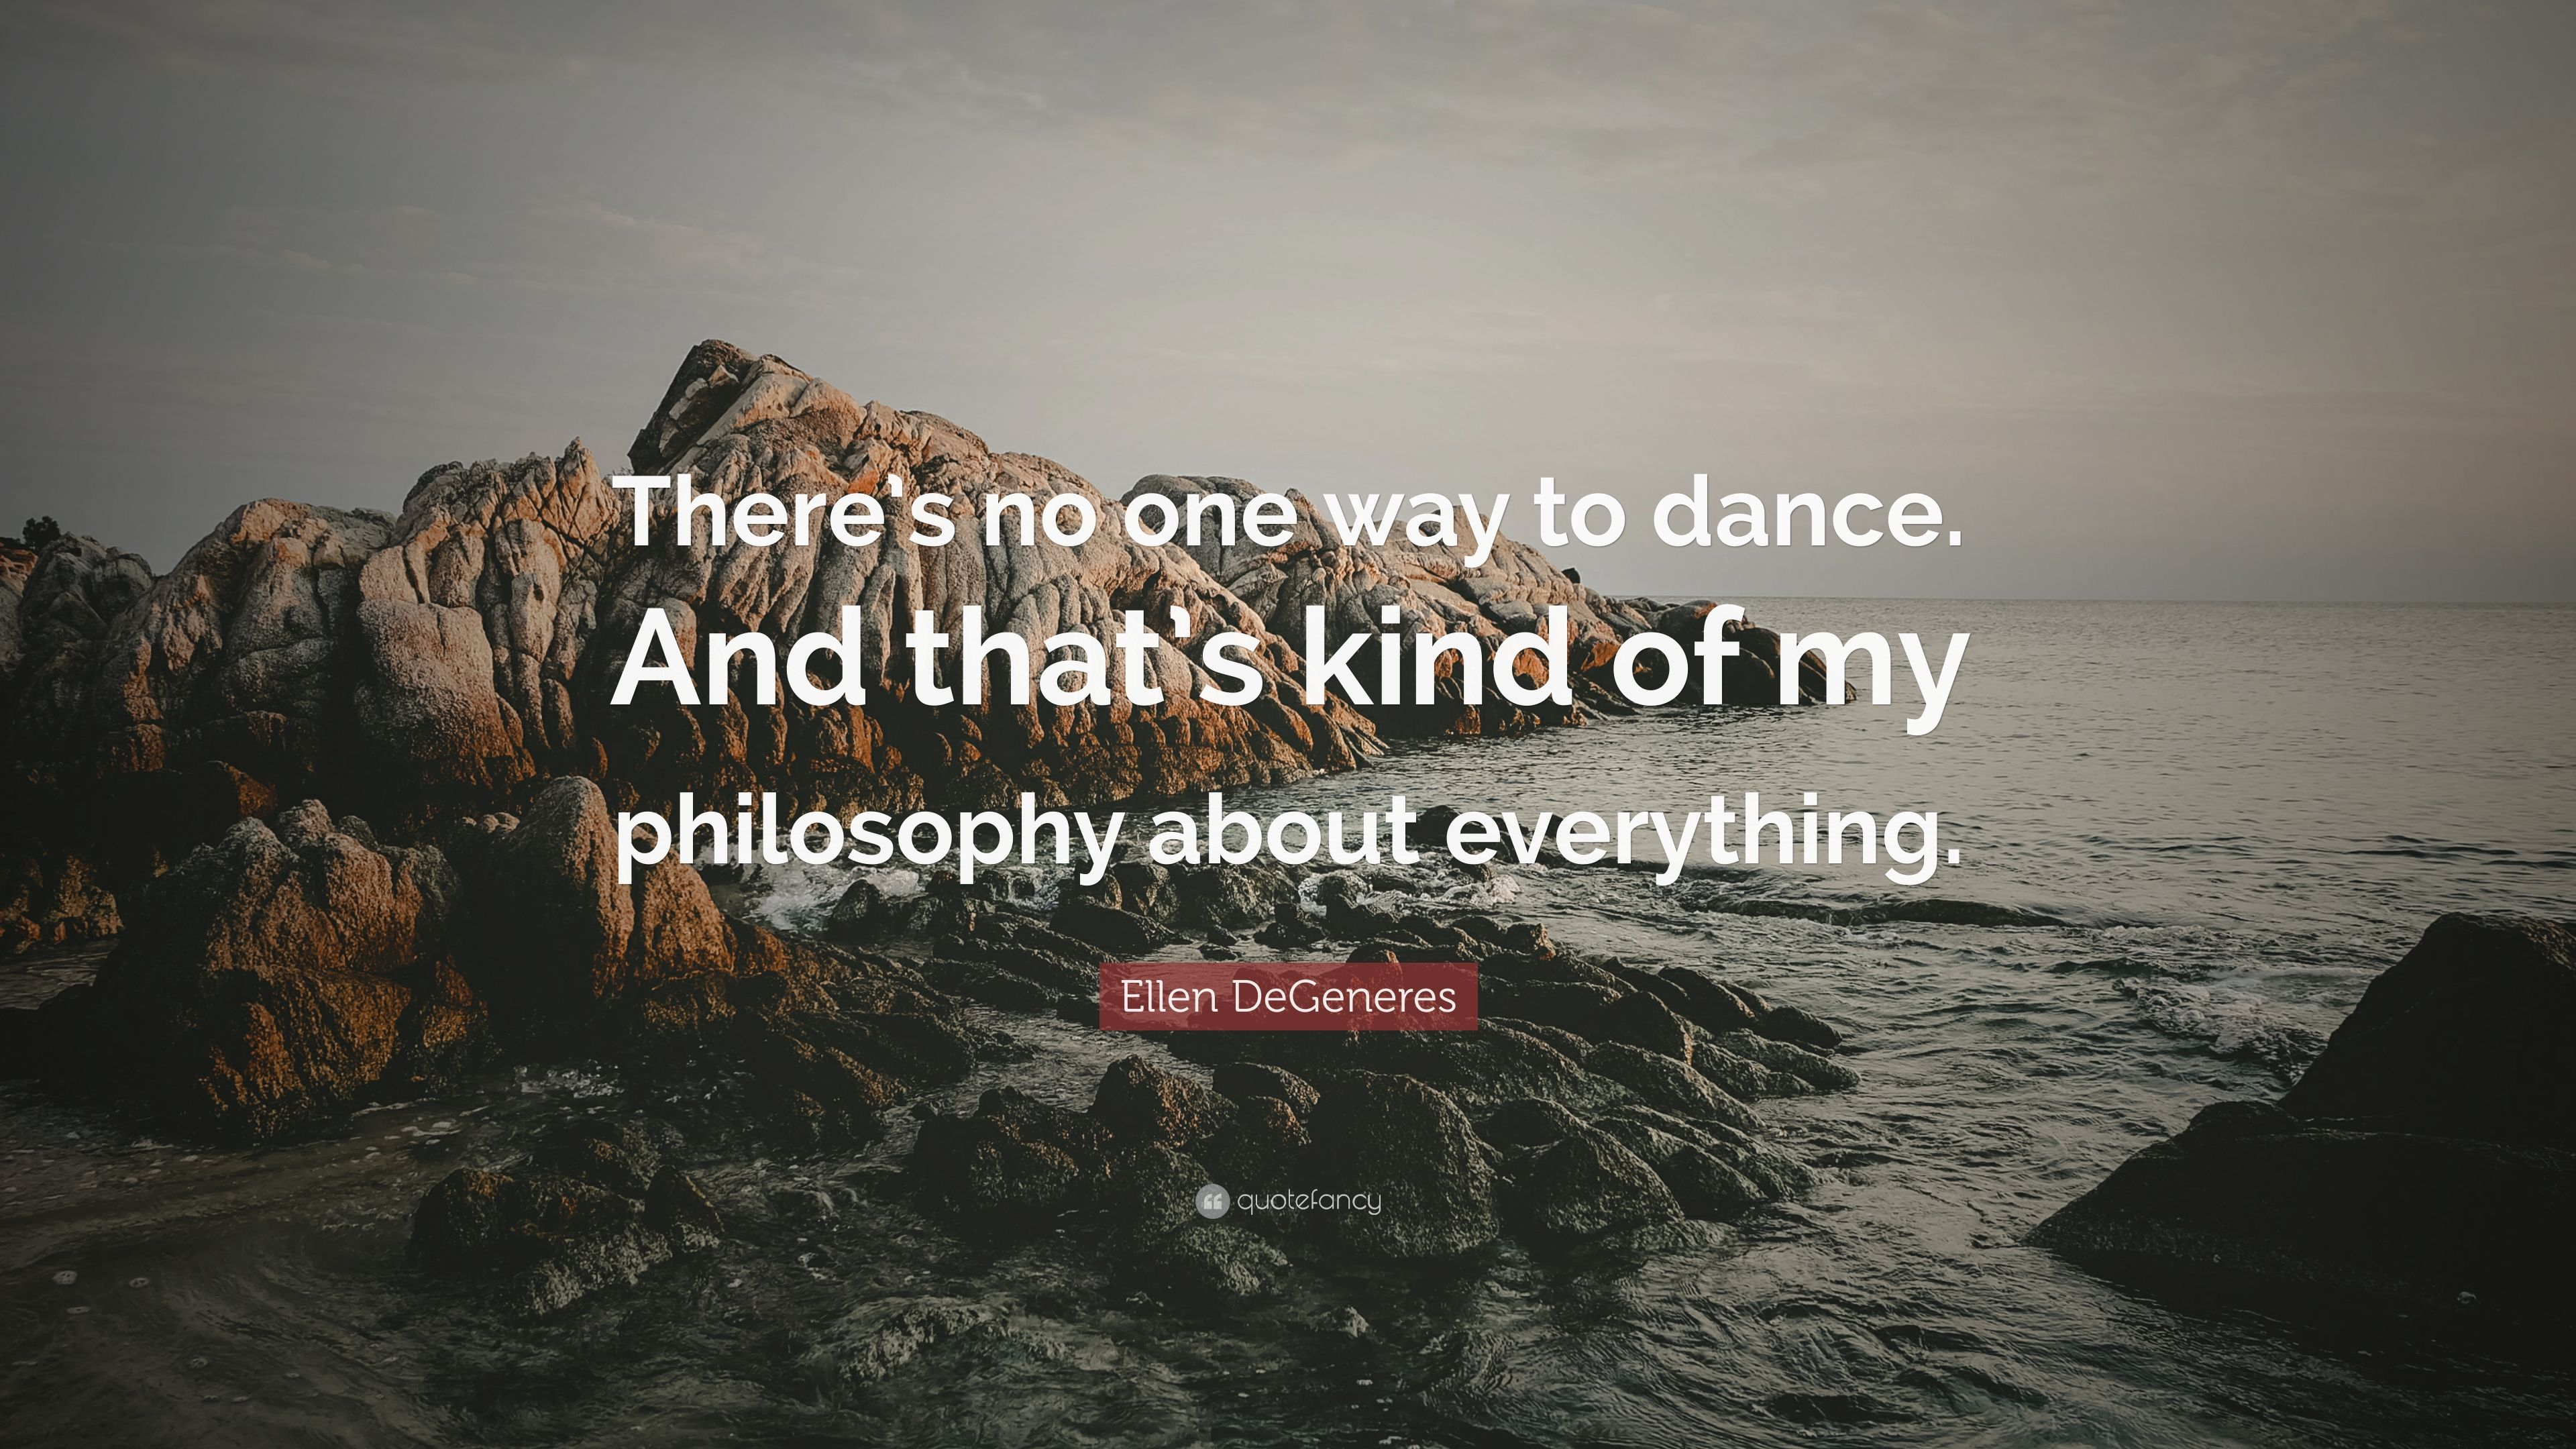 Ellen Degeneres Quote There S No One Way To Dance And That S Kind Of My Philosophy About Everything 12 Wallpapers Quotefancy